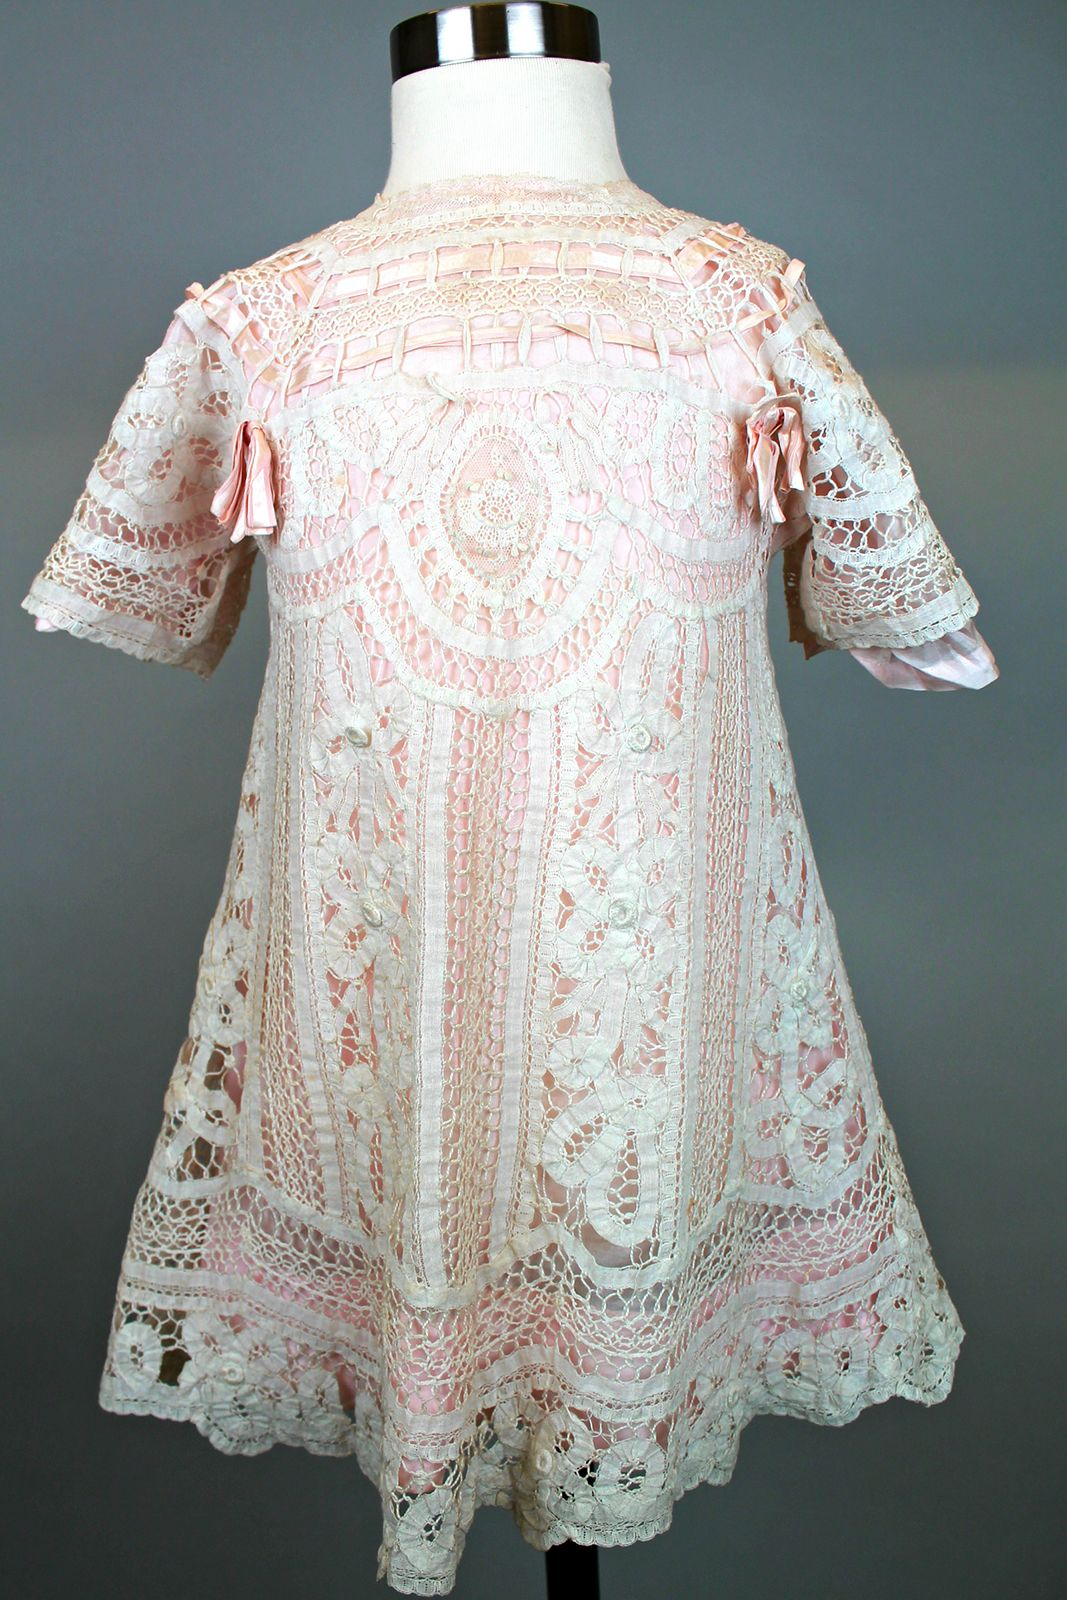 early 20th century child's dress